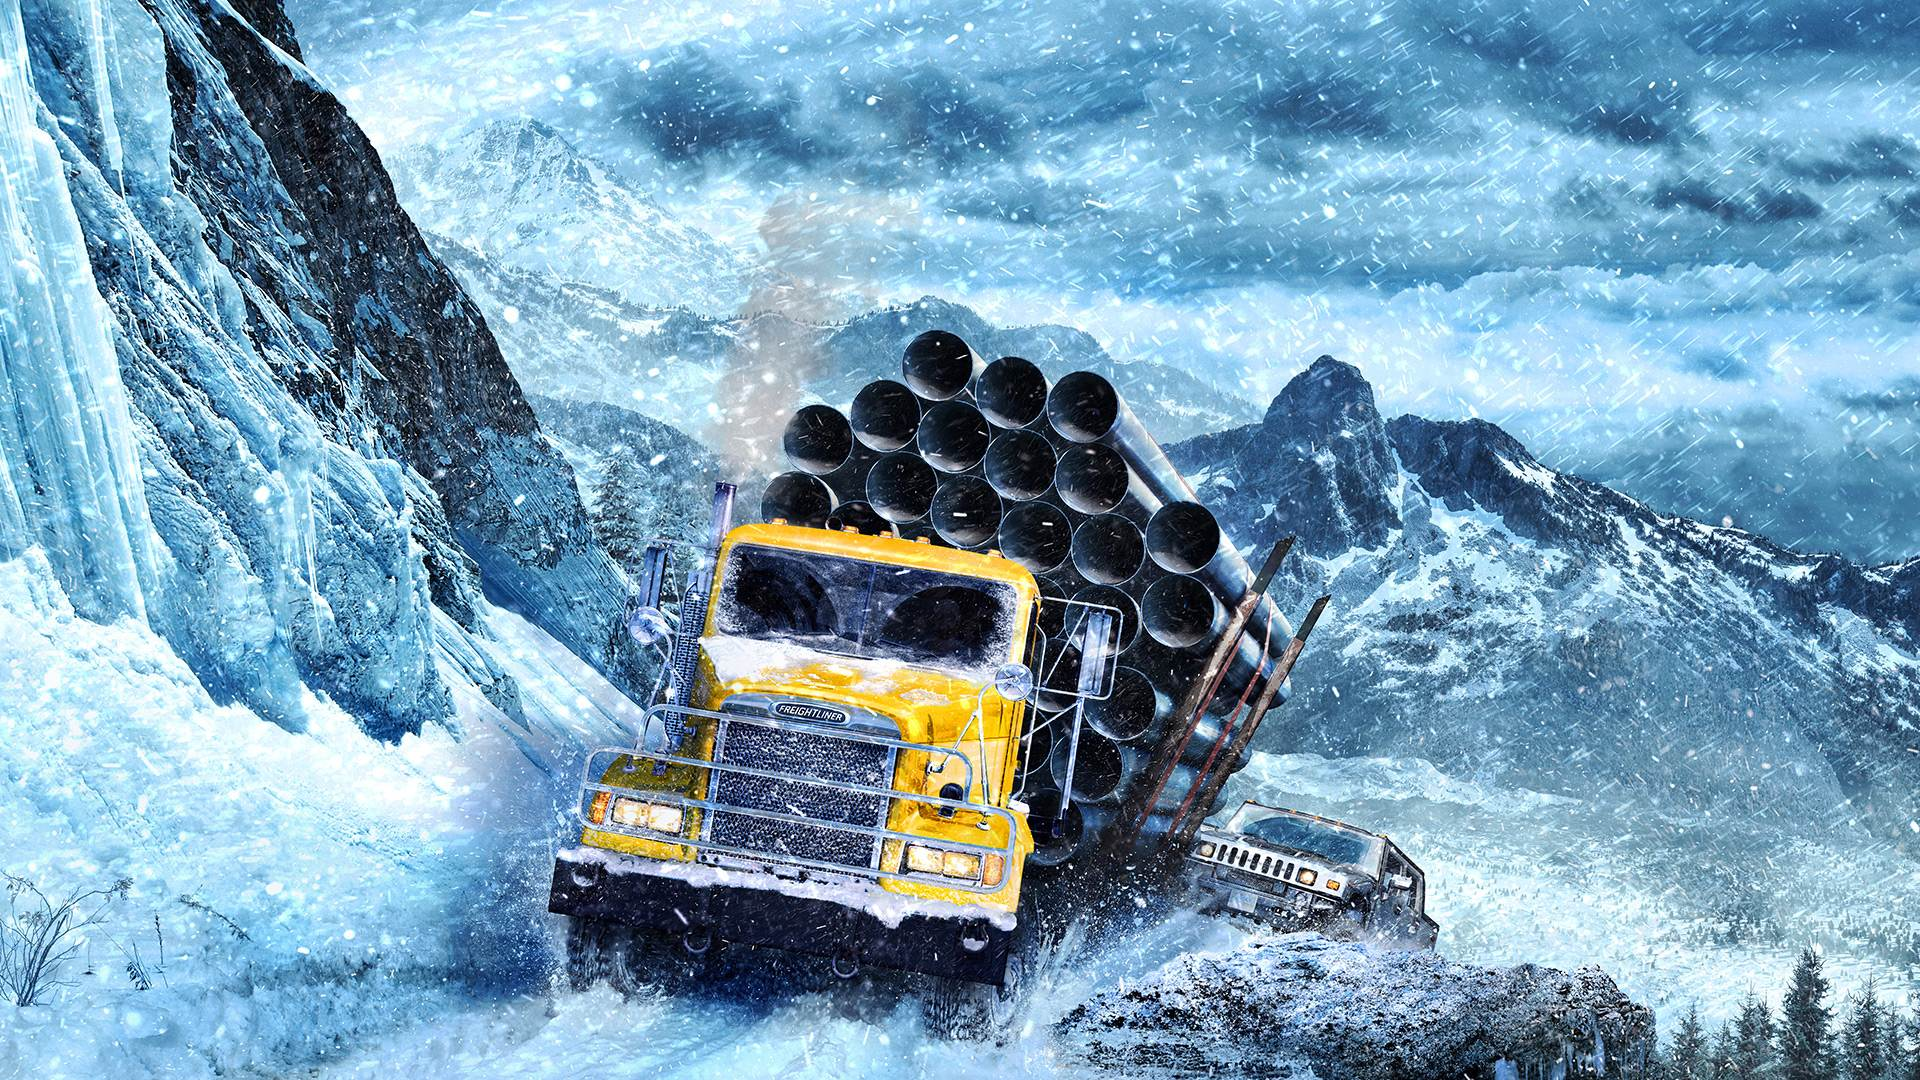 Rough-and-tumble vehicle sim SnowRunner is coming to Xbox Game Pass screenshot